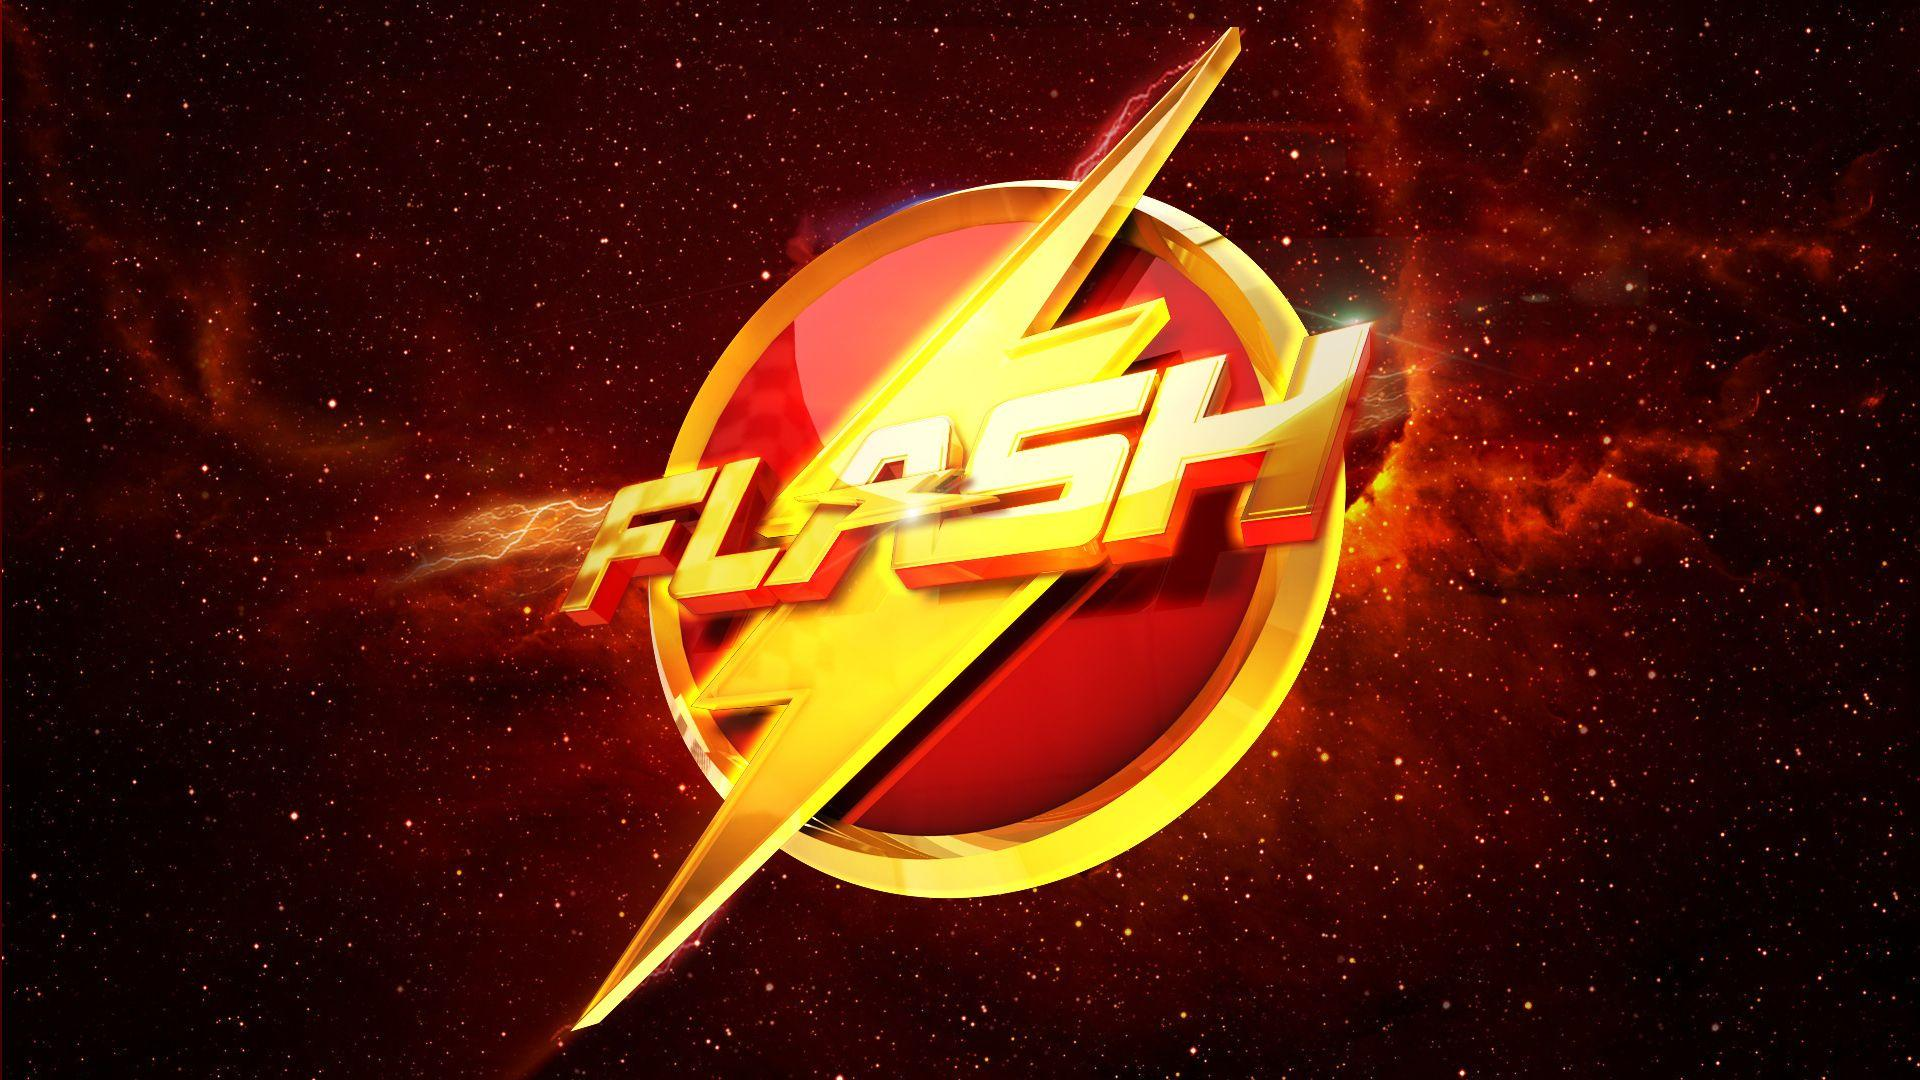 CW The Flash Wallpapers